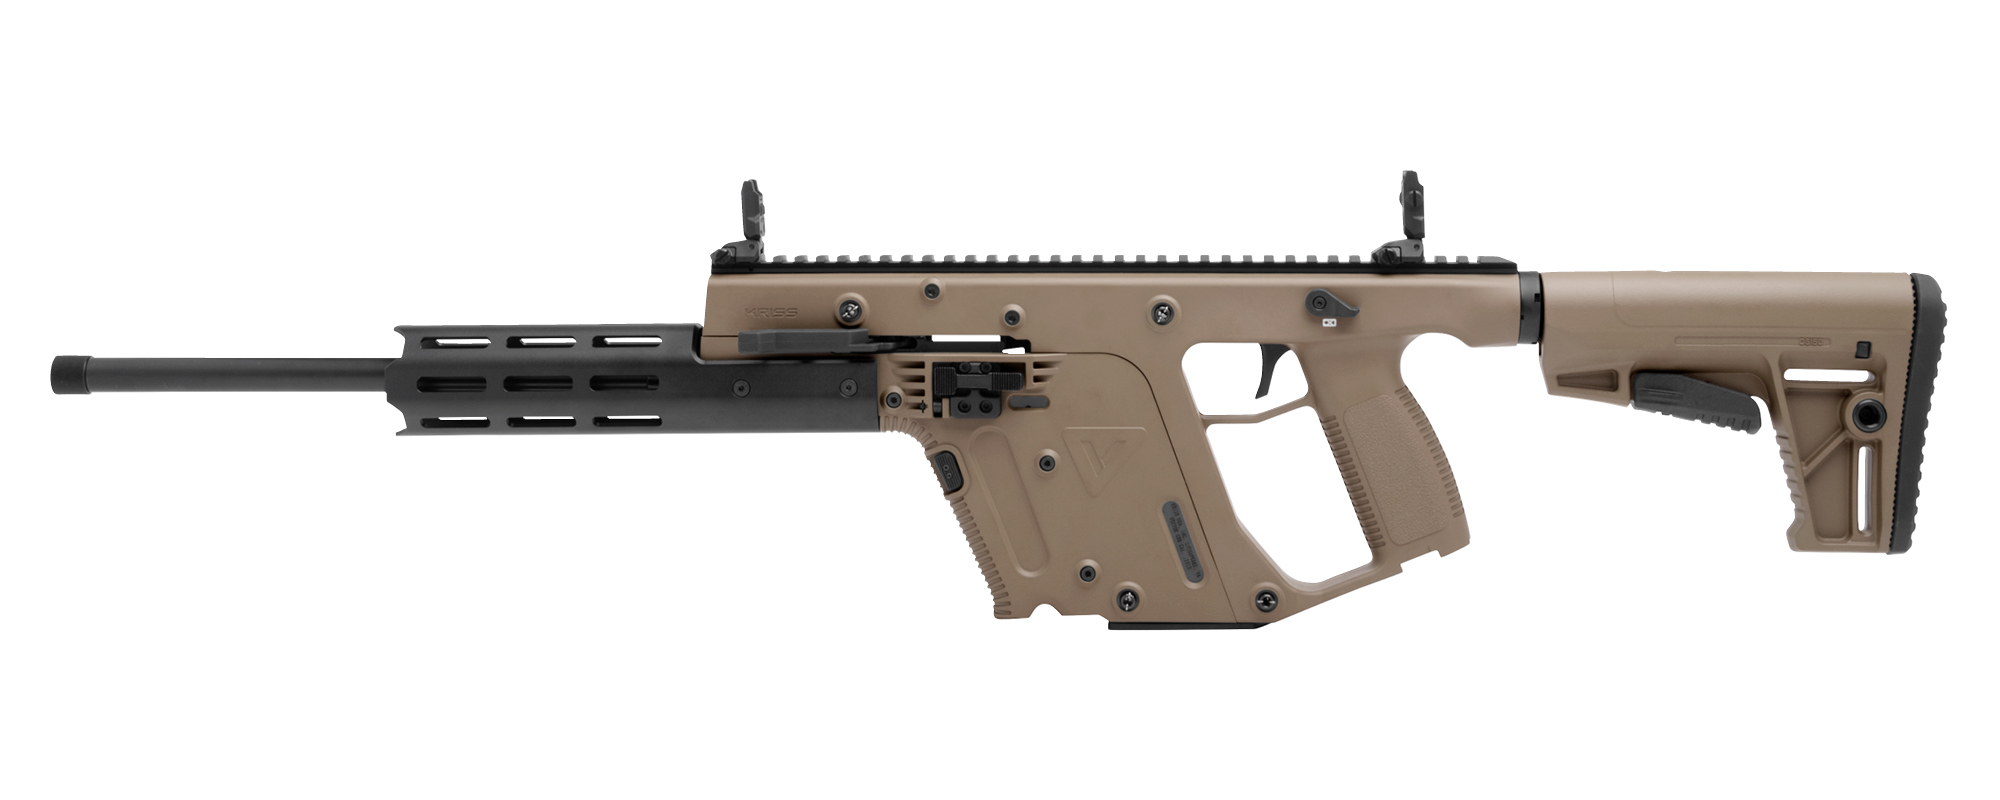 Second Amendment Spotlight: Kriss Vector SMG